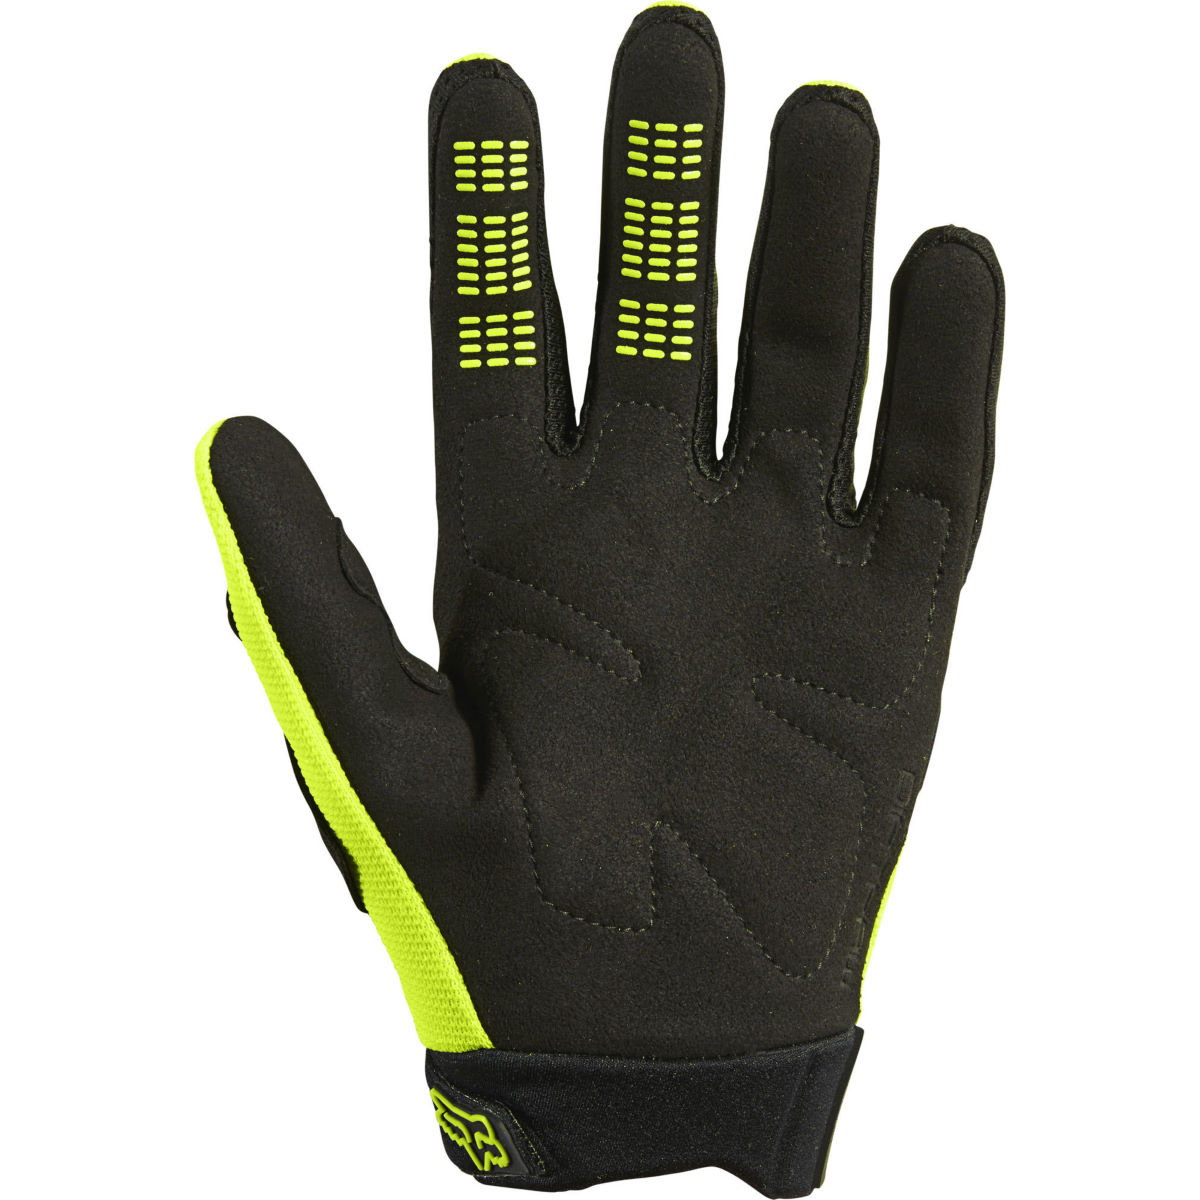 Fox Racing Youth Dirtpaw Race Cycling Gloves - Y-s Fluo Yellow